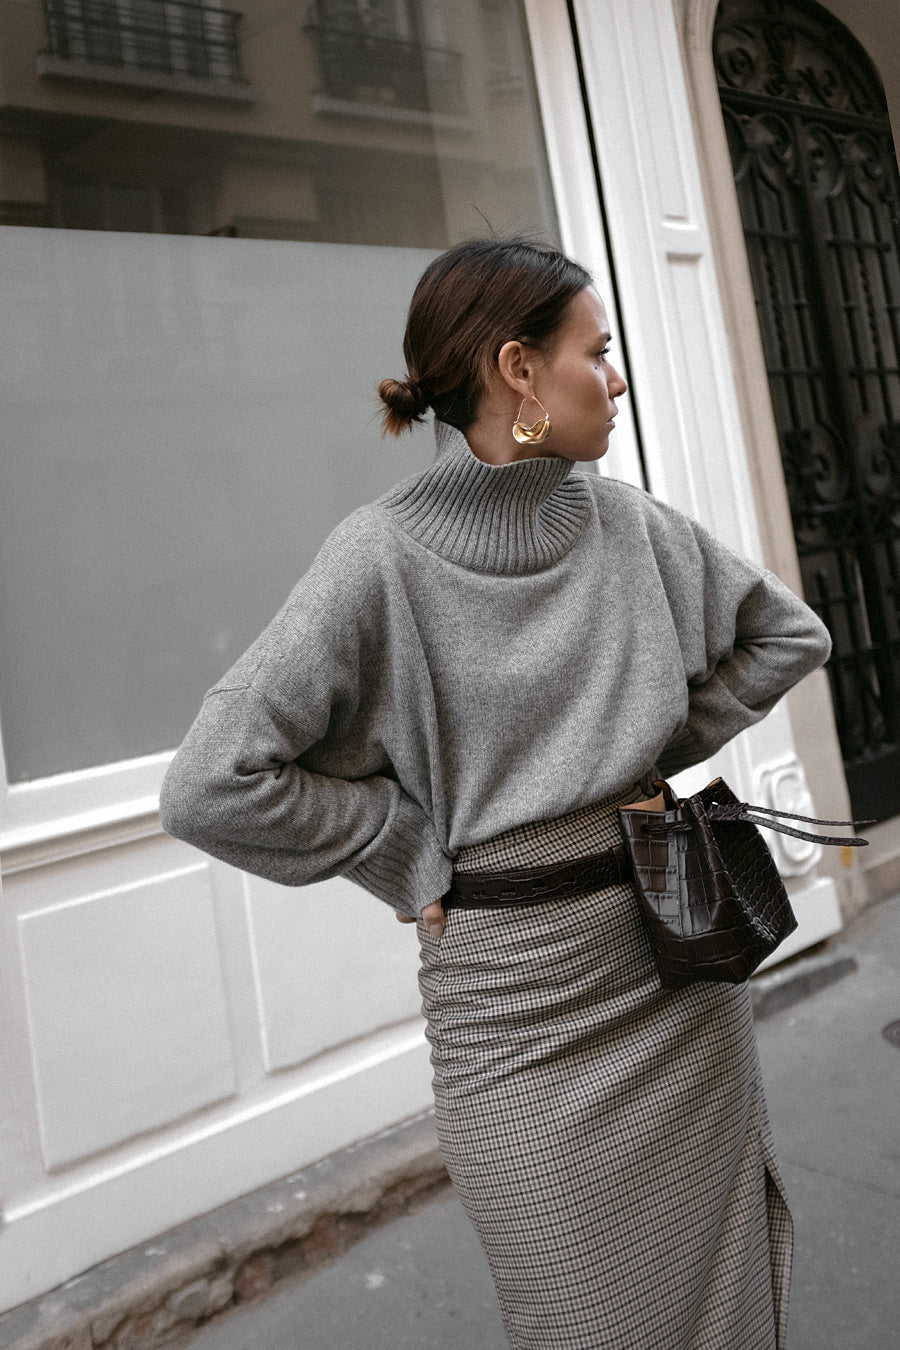 98931e1475e72d Common Thread | Women's Cashmere | Grey Relaxed Roll Neck Jumper, Sweater